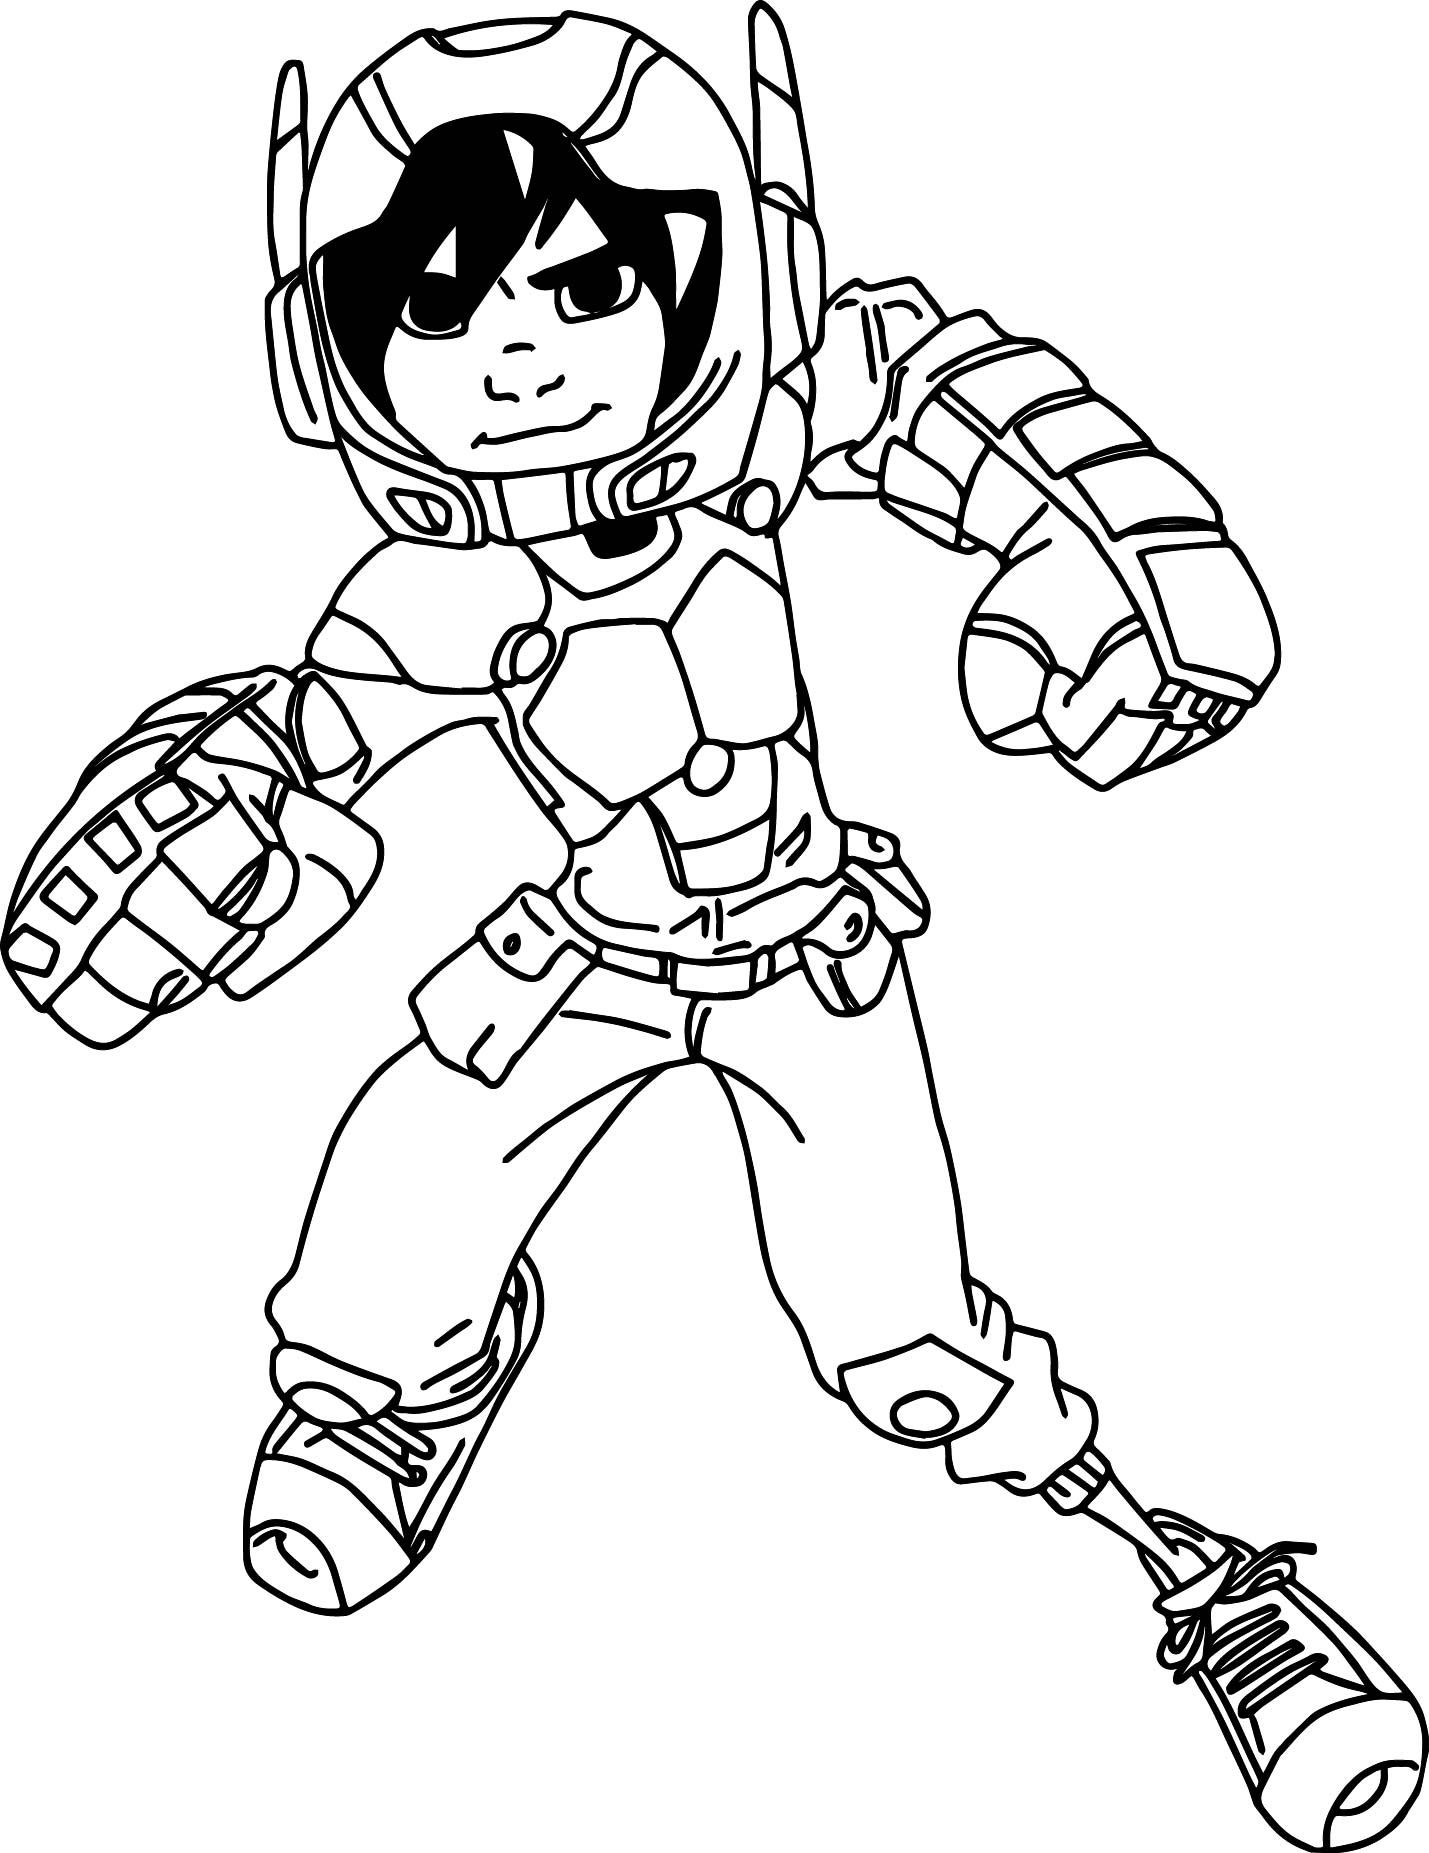 big hero 6 coloring pages awesome big hero 6 characters hiro hamada stay coloring big hero coloring pages 6